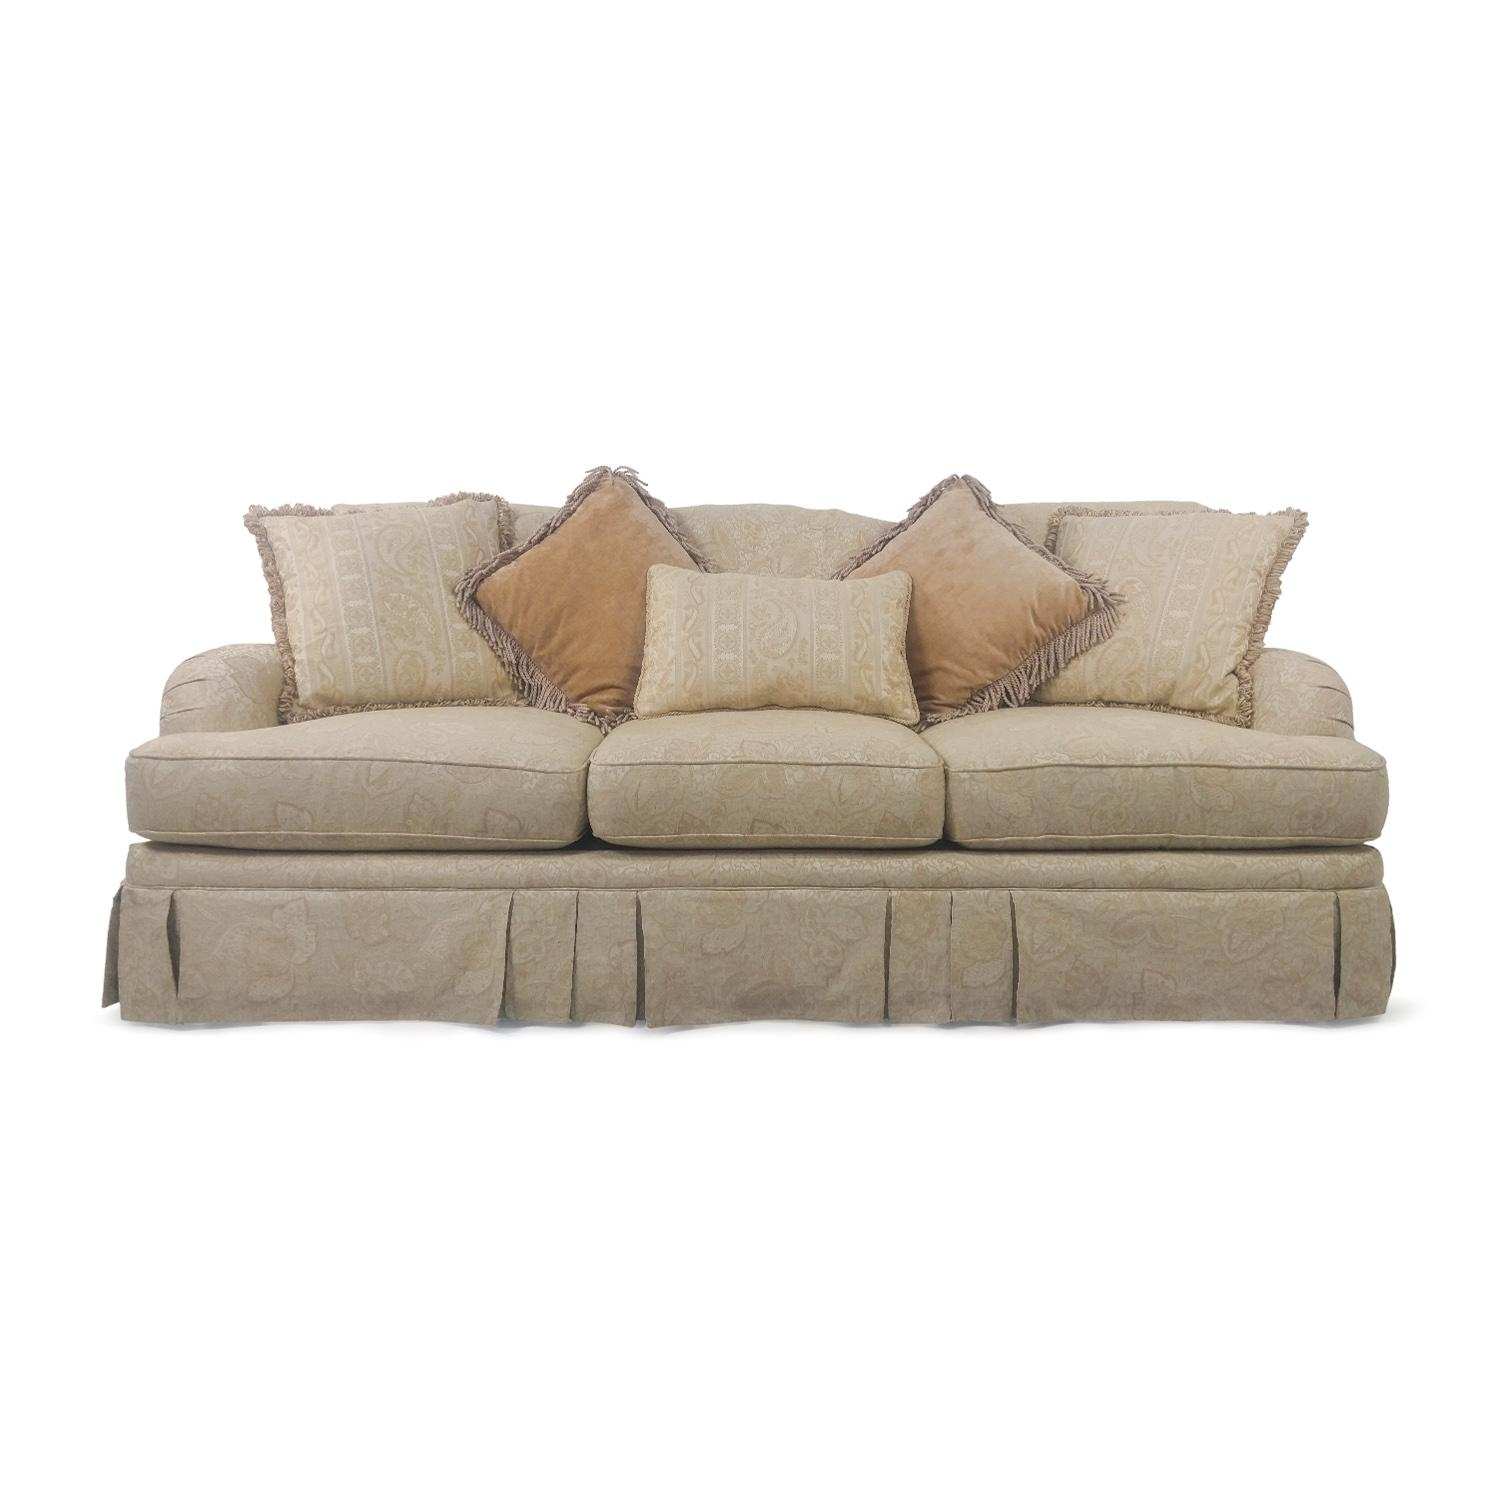 classic sofa natural cleaning 20 inspirations sofas for sale ideas